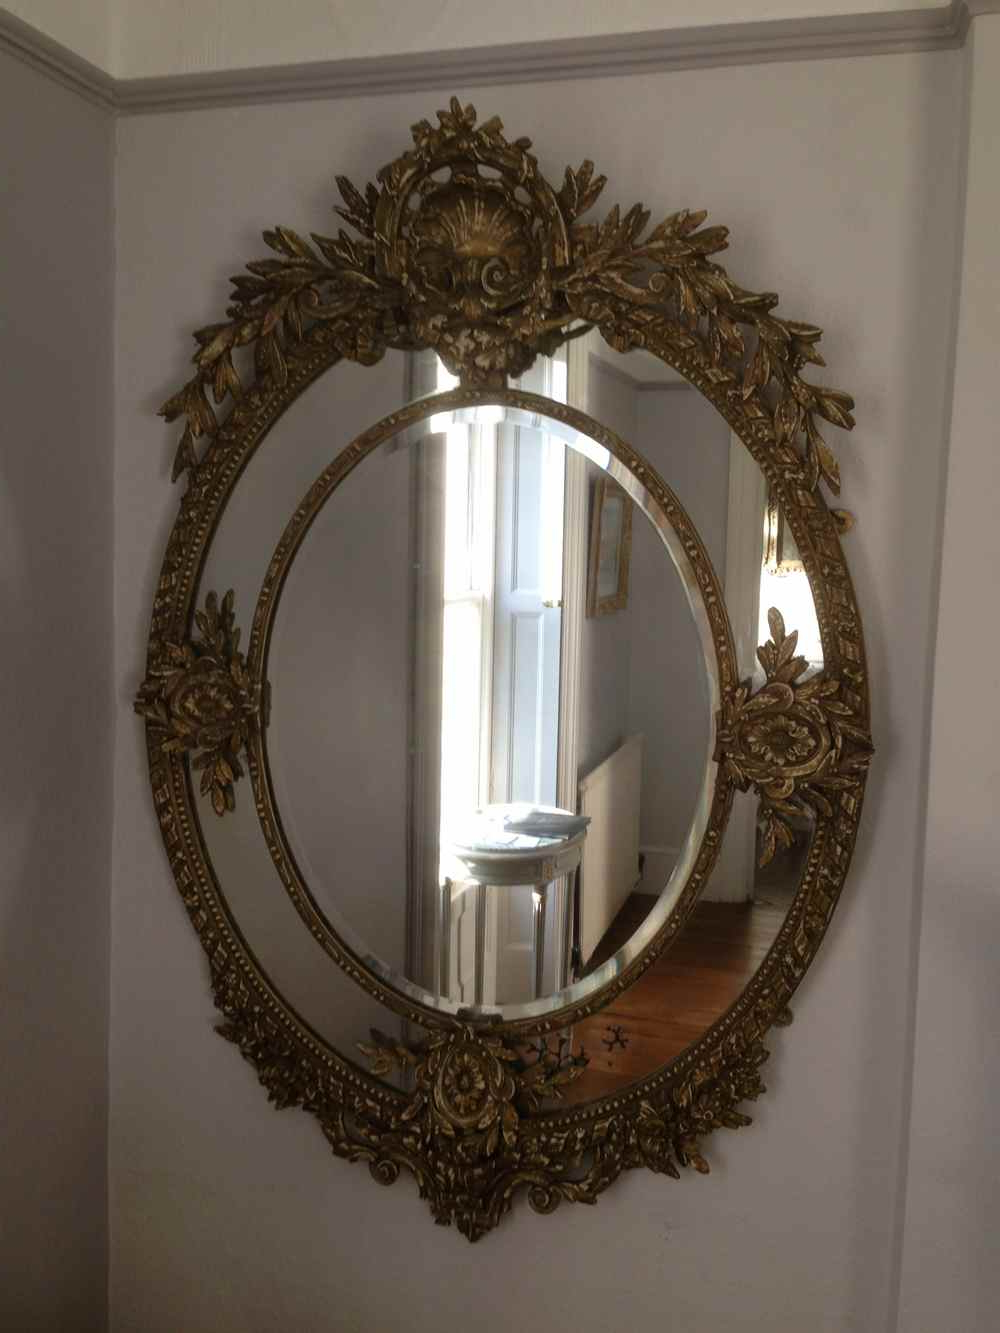 Widely Used A Wonderful Large Antique 19Th Century French Carved Wood Oval Ornate Wall Mirror (View 13 of 20)